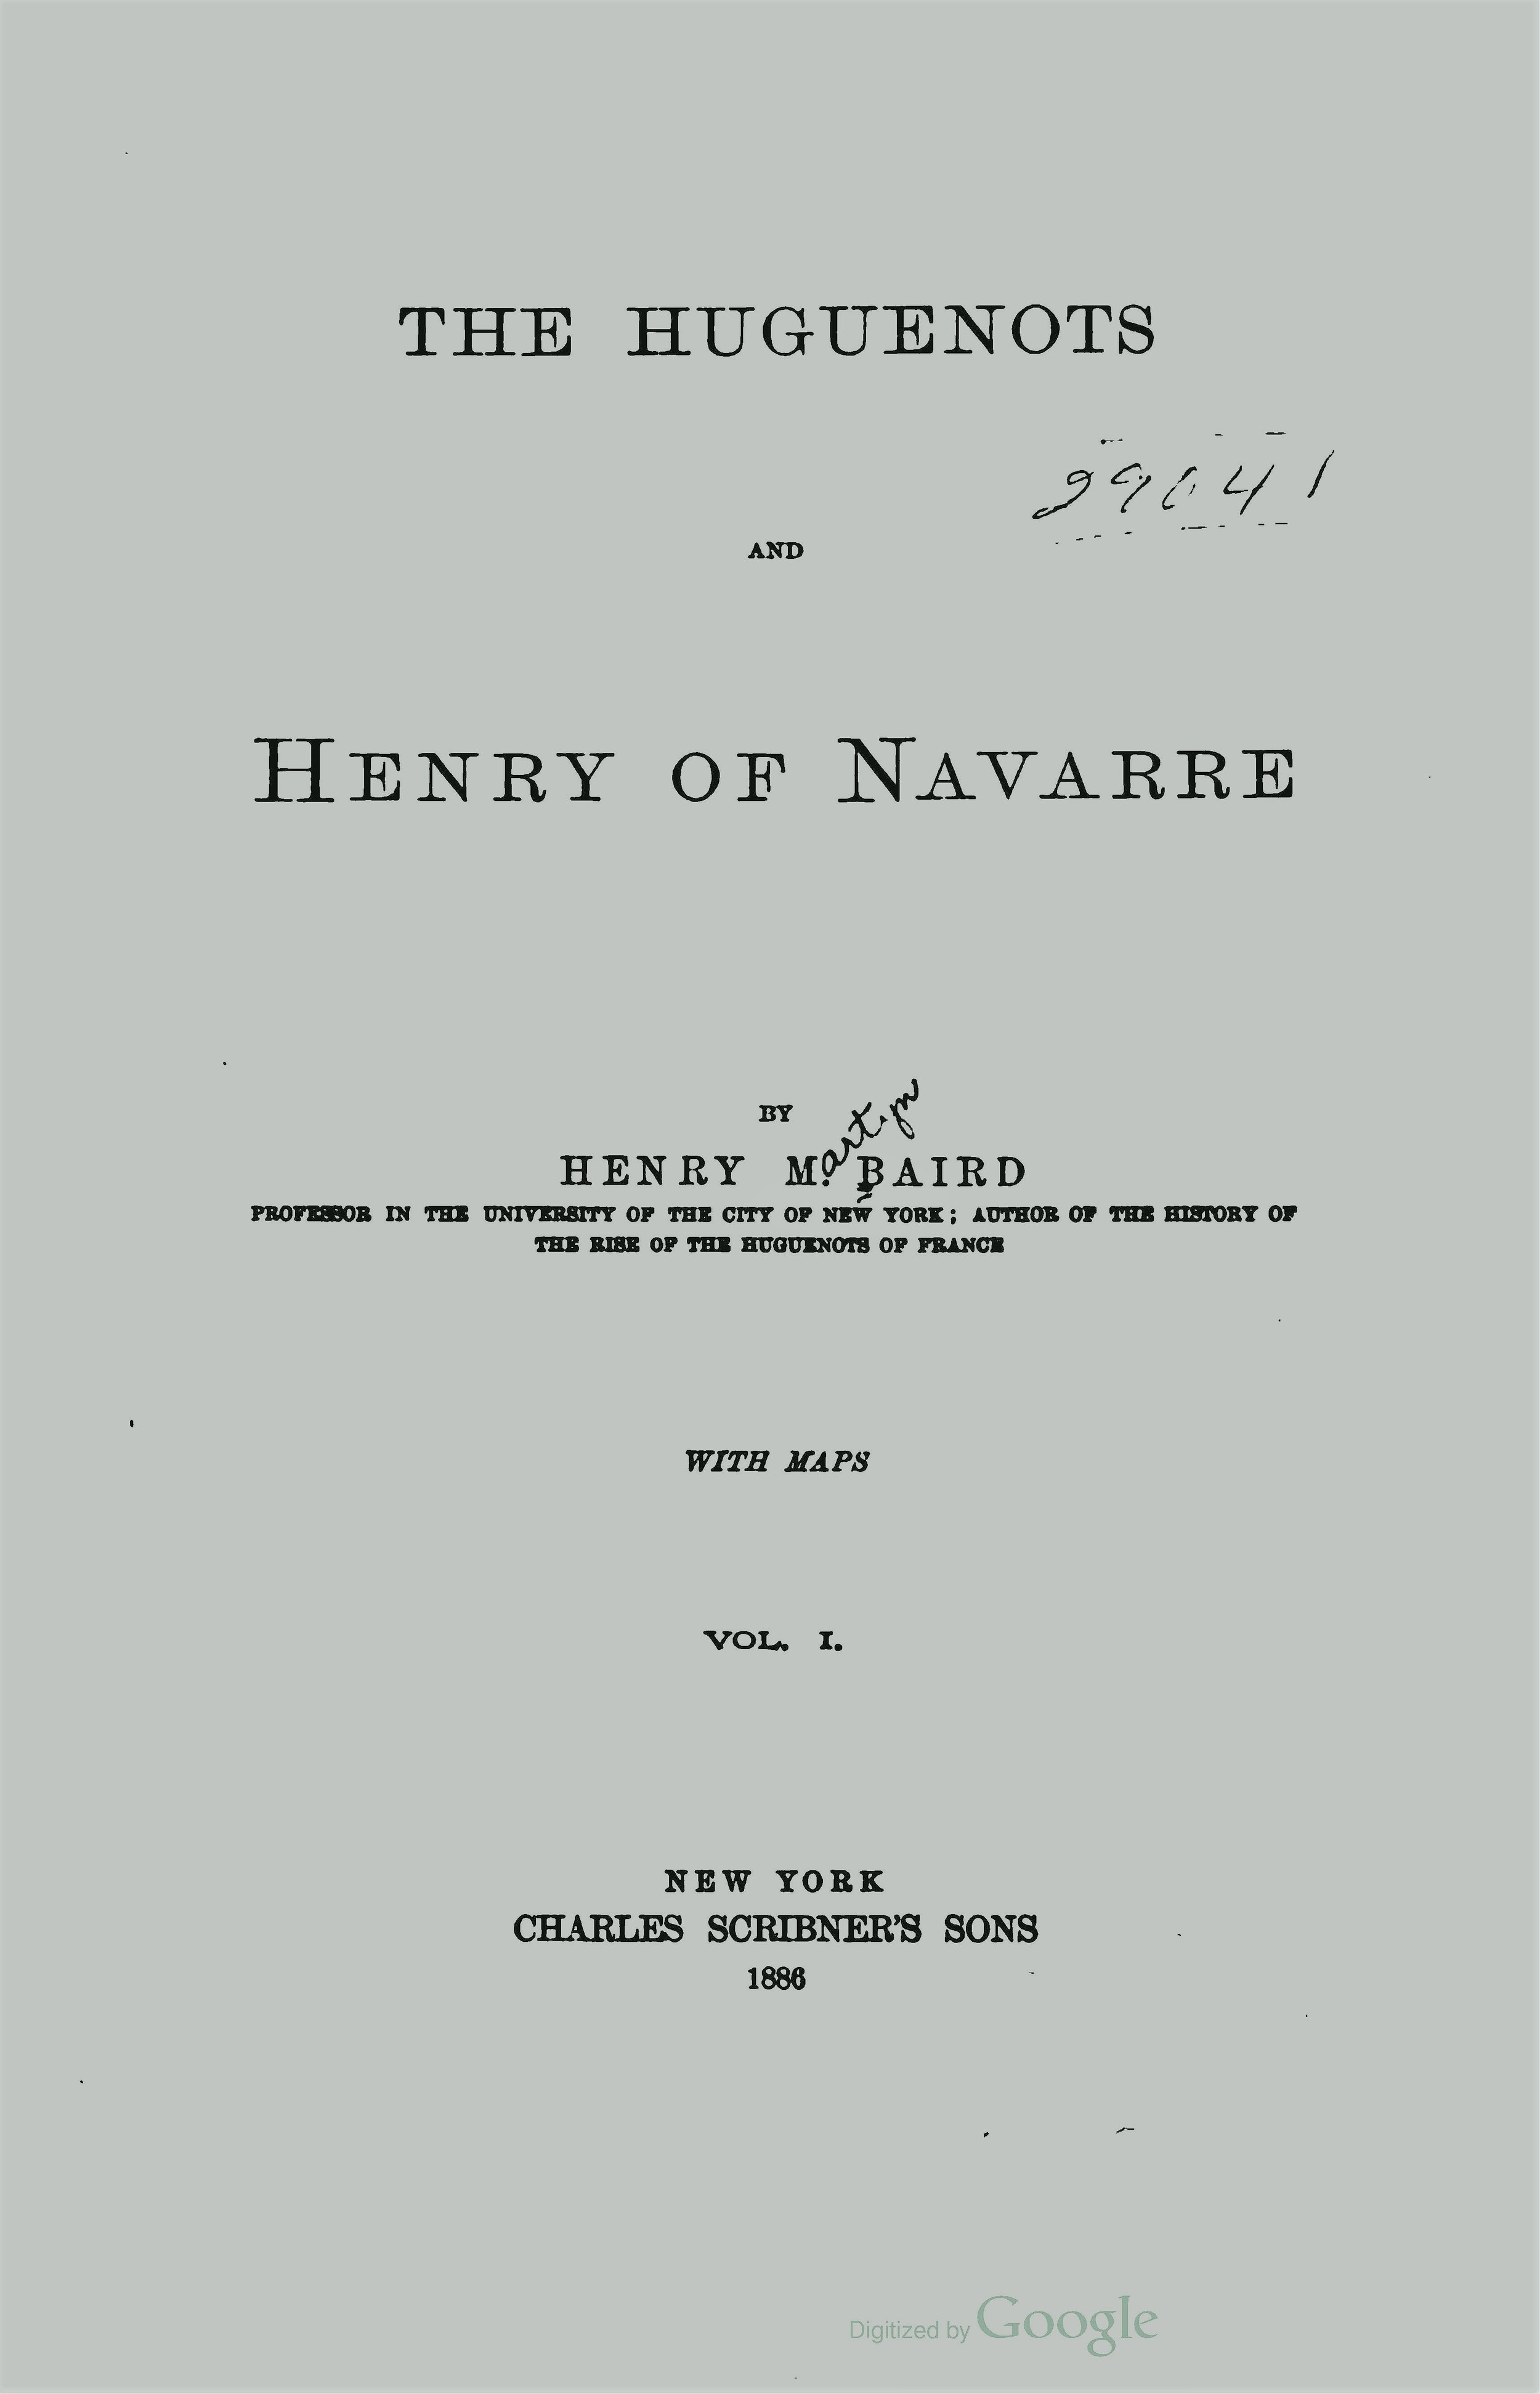 Baird, Henry Martyn, The Huguenots and Henry of Navarre, Vol. 1 Title Page.jpg